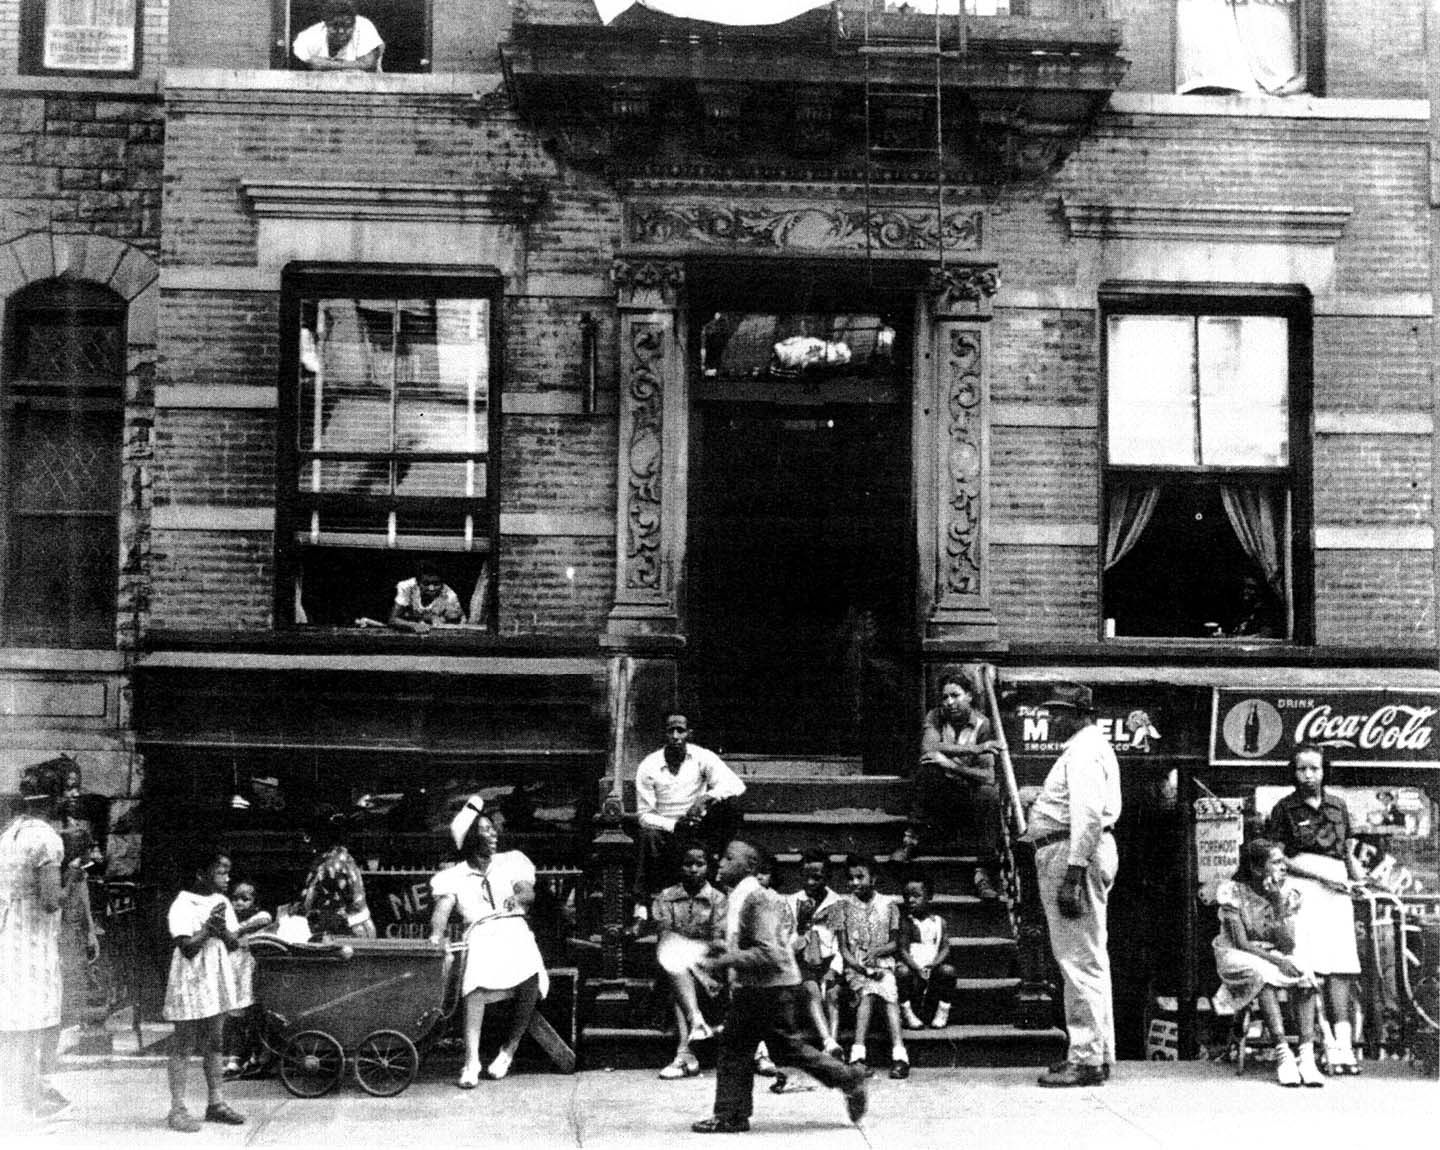 a history of the american ghetto Ghetto definition, a section of a city, especially a thickly populated slum area, inhabited predominantly by members of an ethnic or other minority group, often as a result of social or economic restrictions, pressures, or hardships.